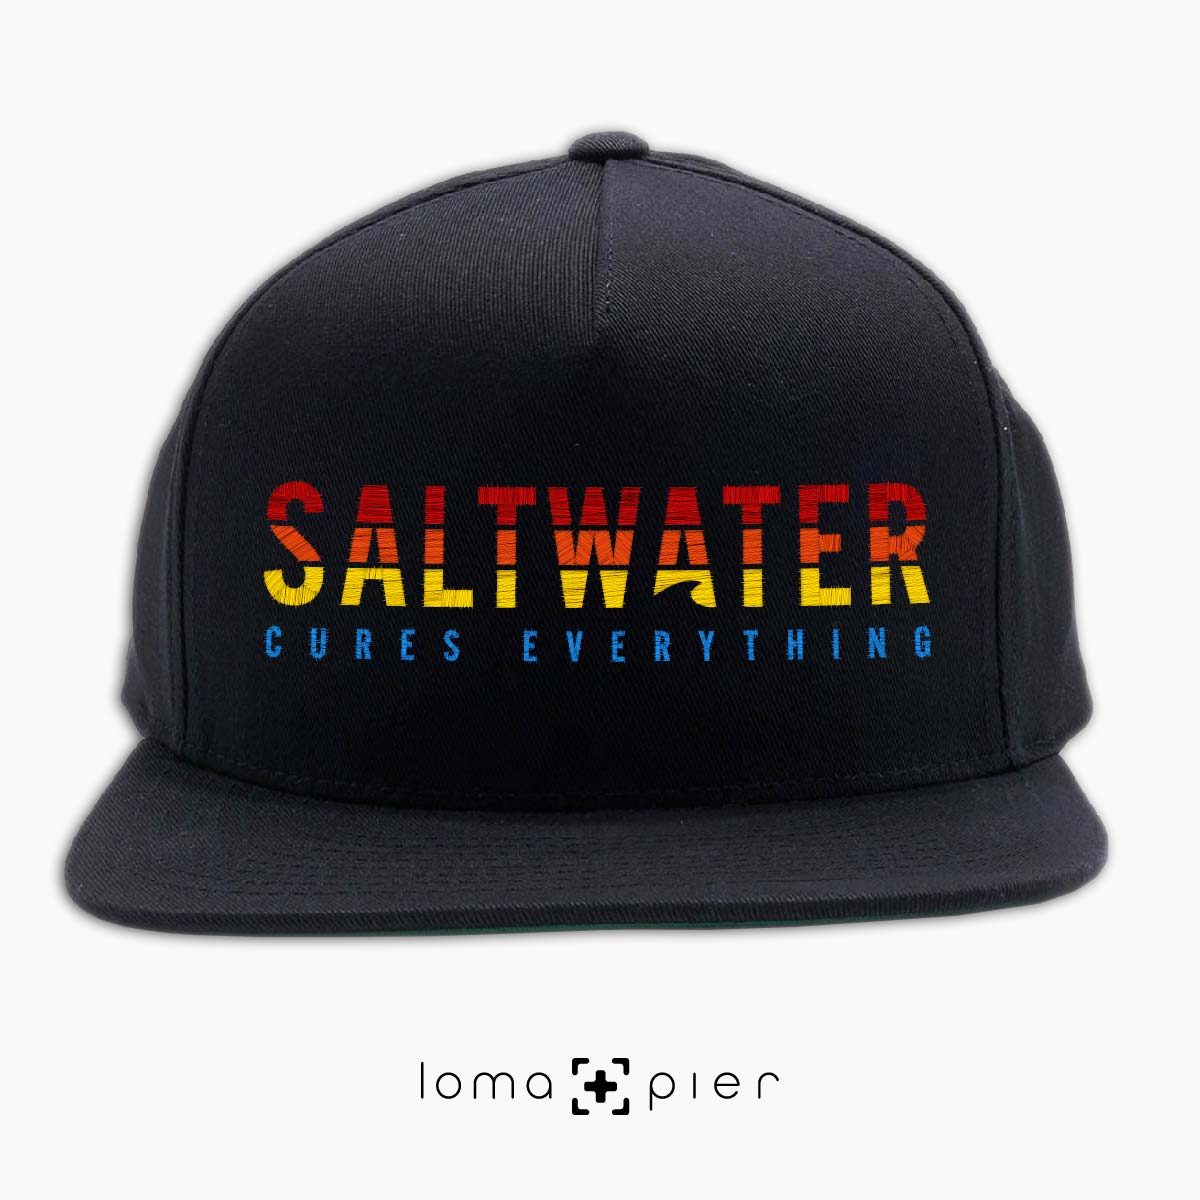 SALTWATER CURES EVERYTHING black classic snapback hat by loma+pier hat store